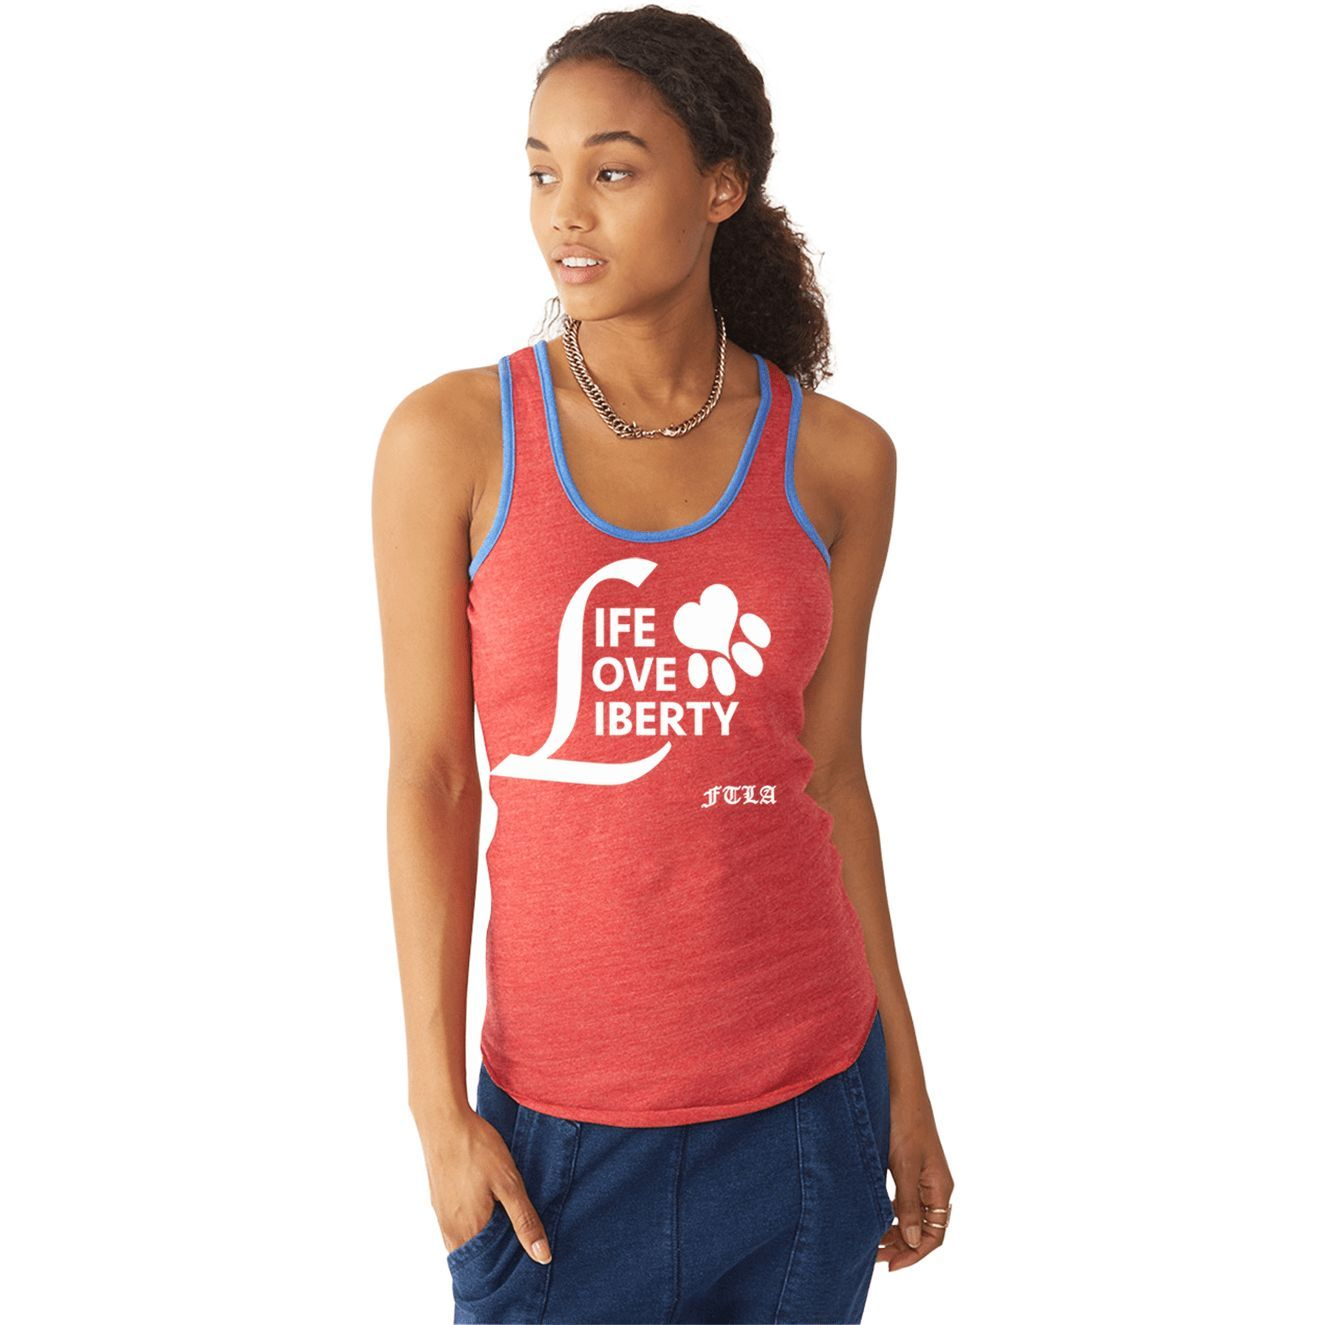 LIMITED EDITION Beagle Freedom Project Eco-Jersey Ringer Racerback Tank - Life Love Liberty